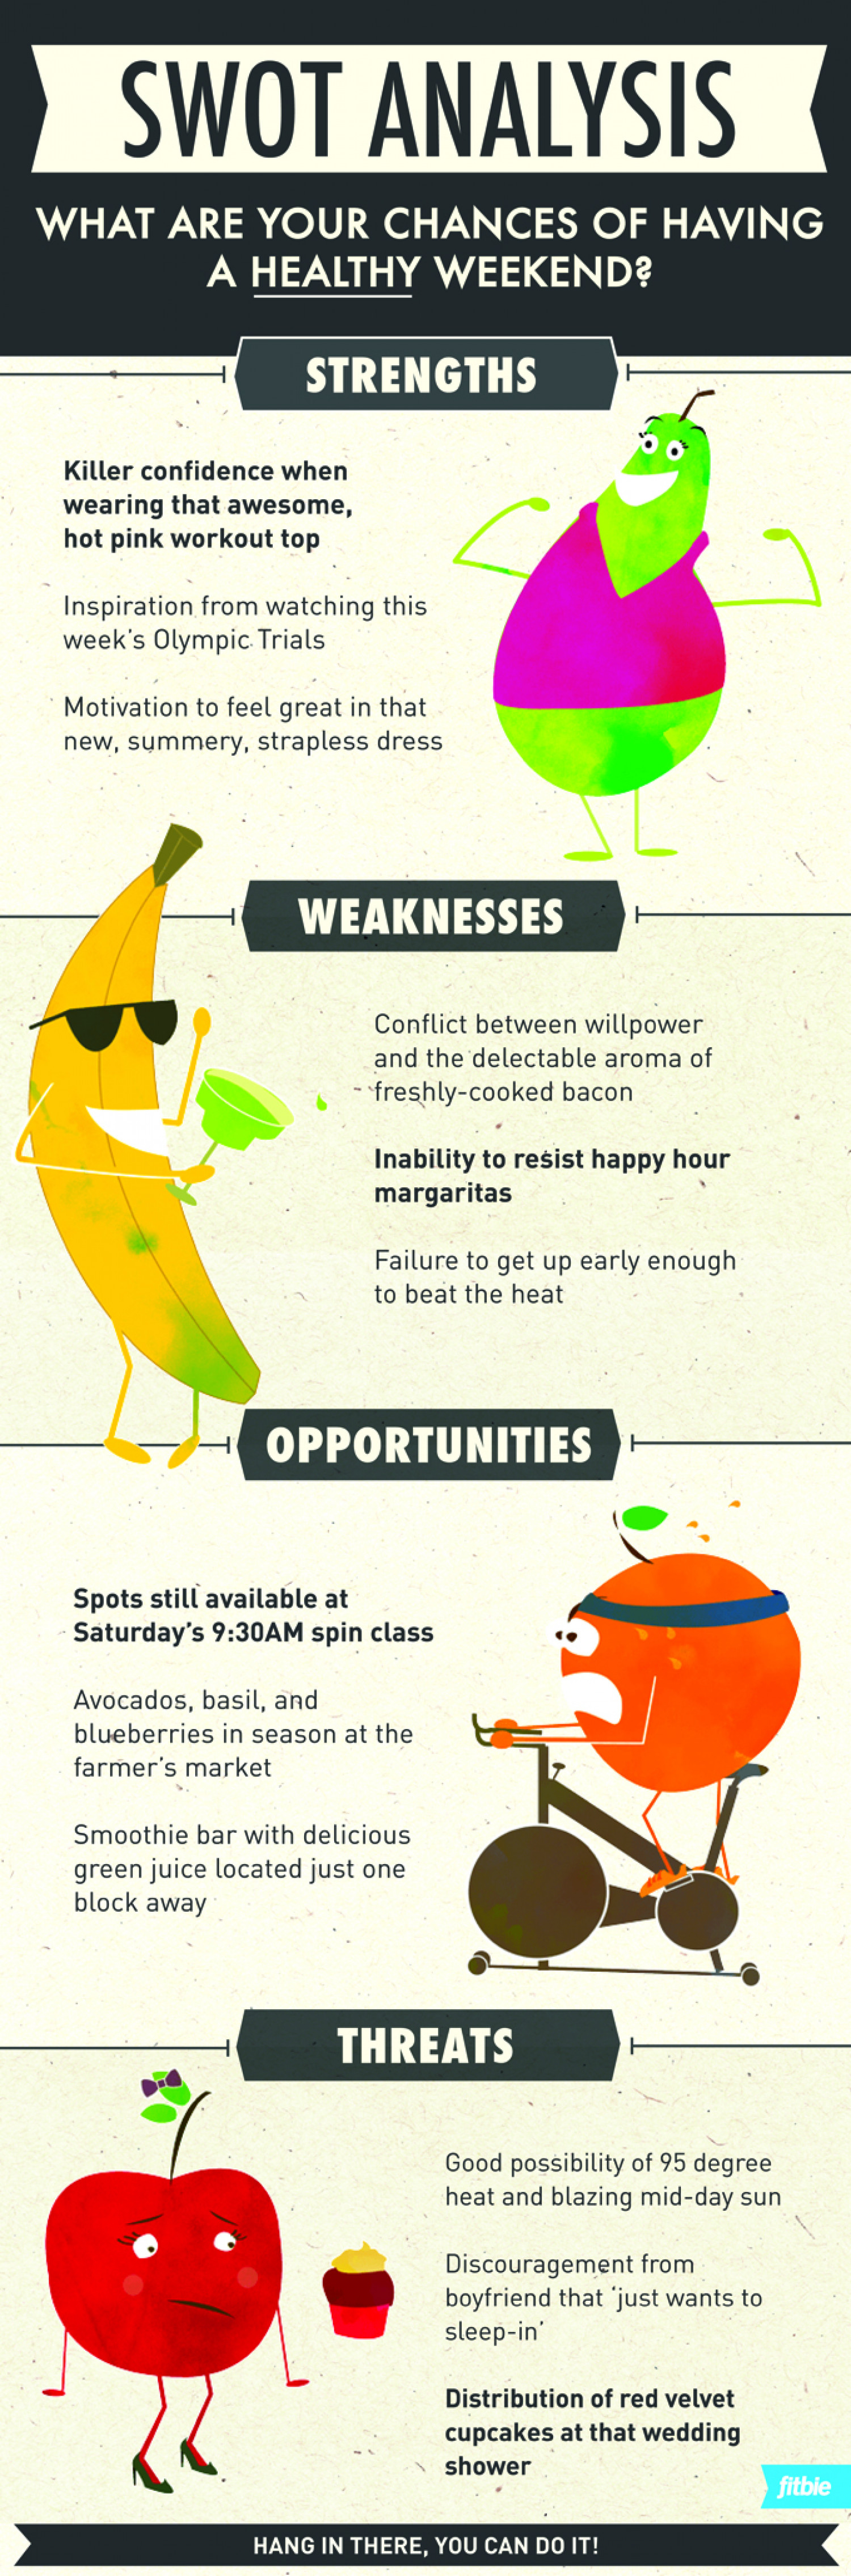 SWOT Analysis: What Are Your Chances of Having A Healthy Weekend? Infographic